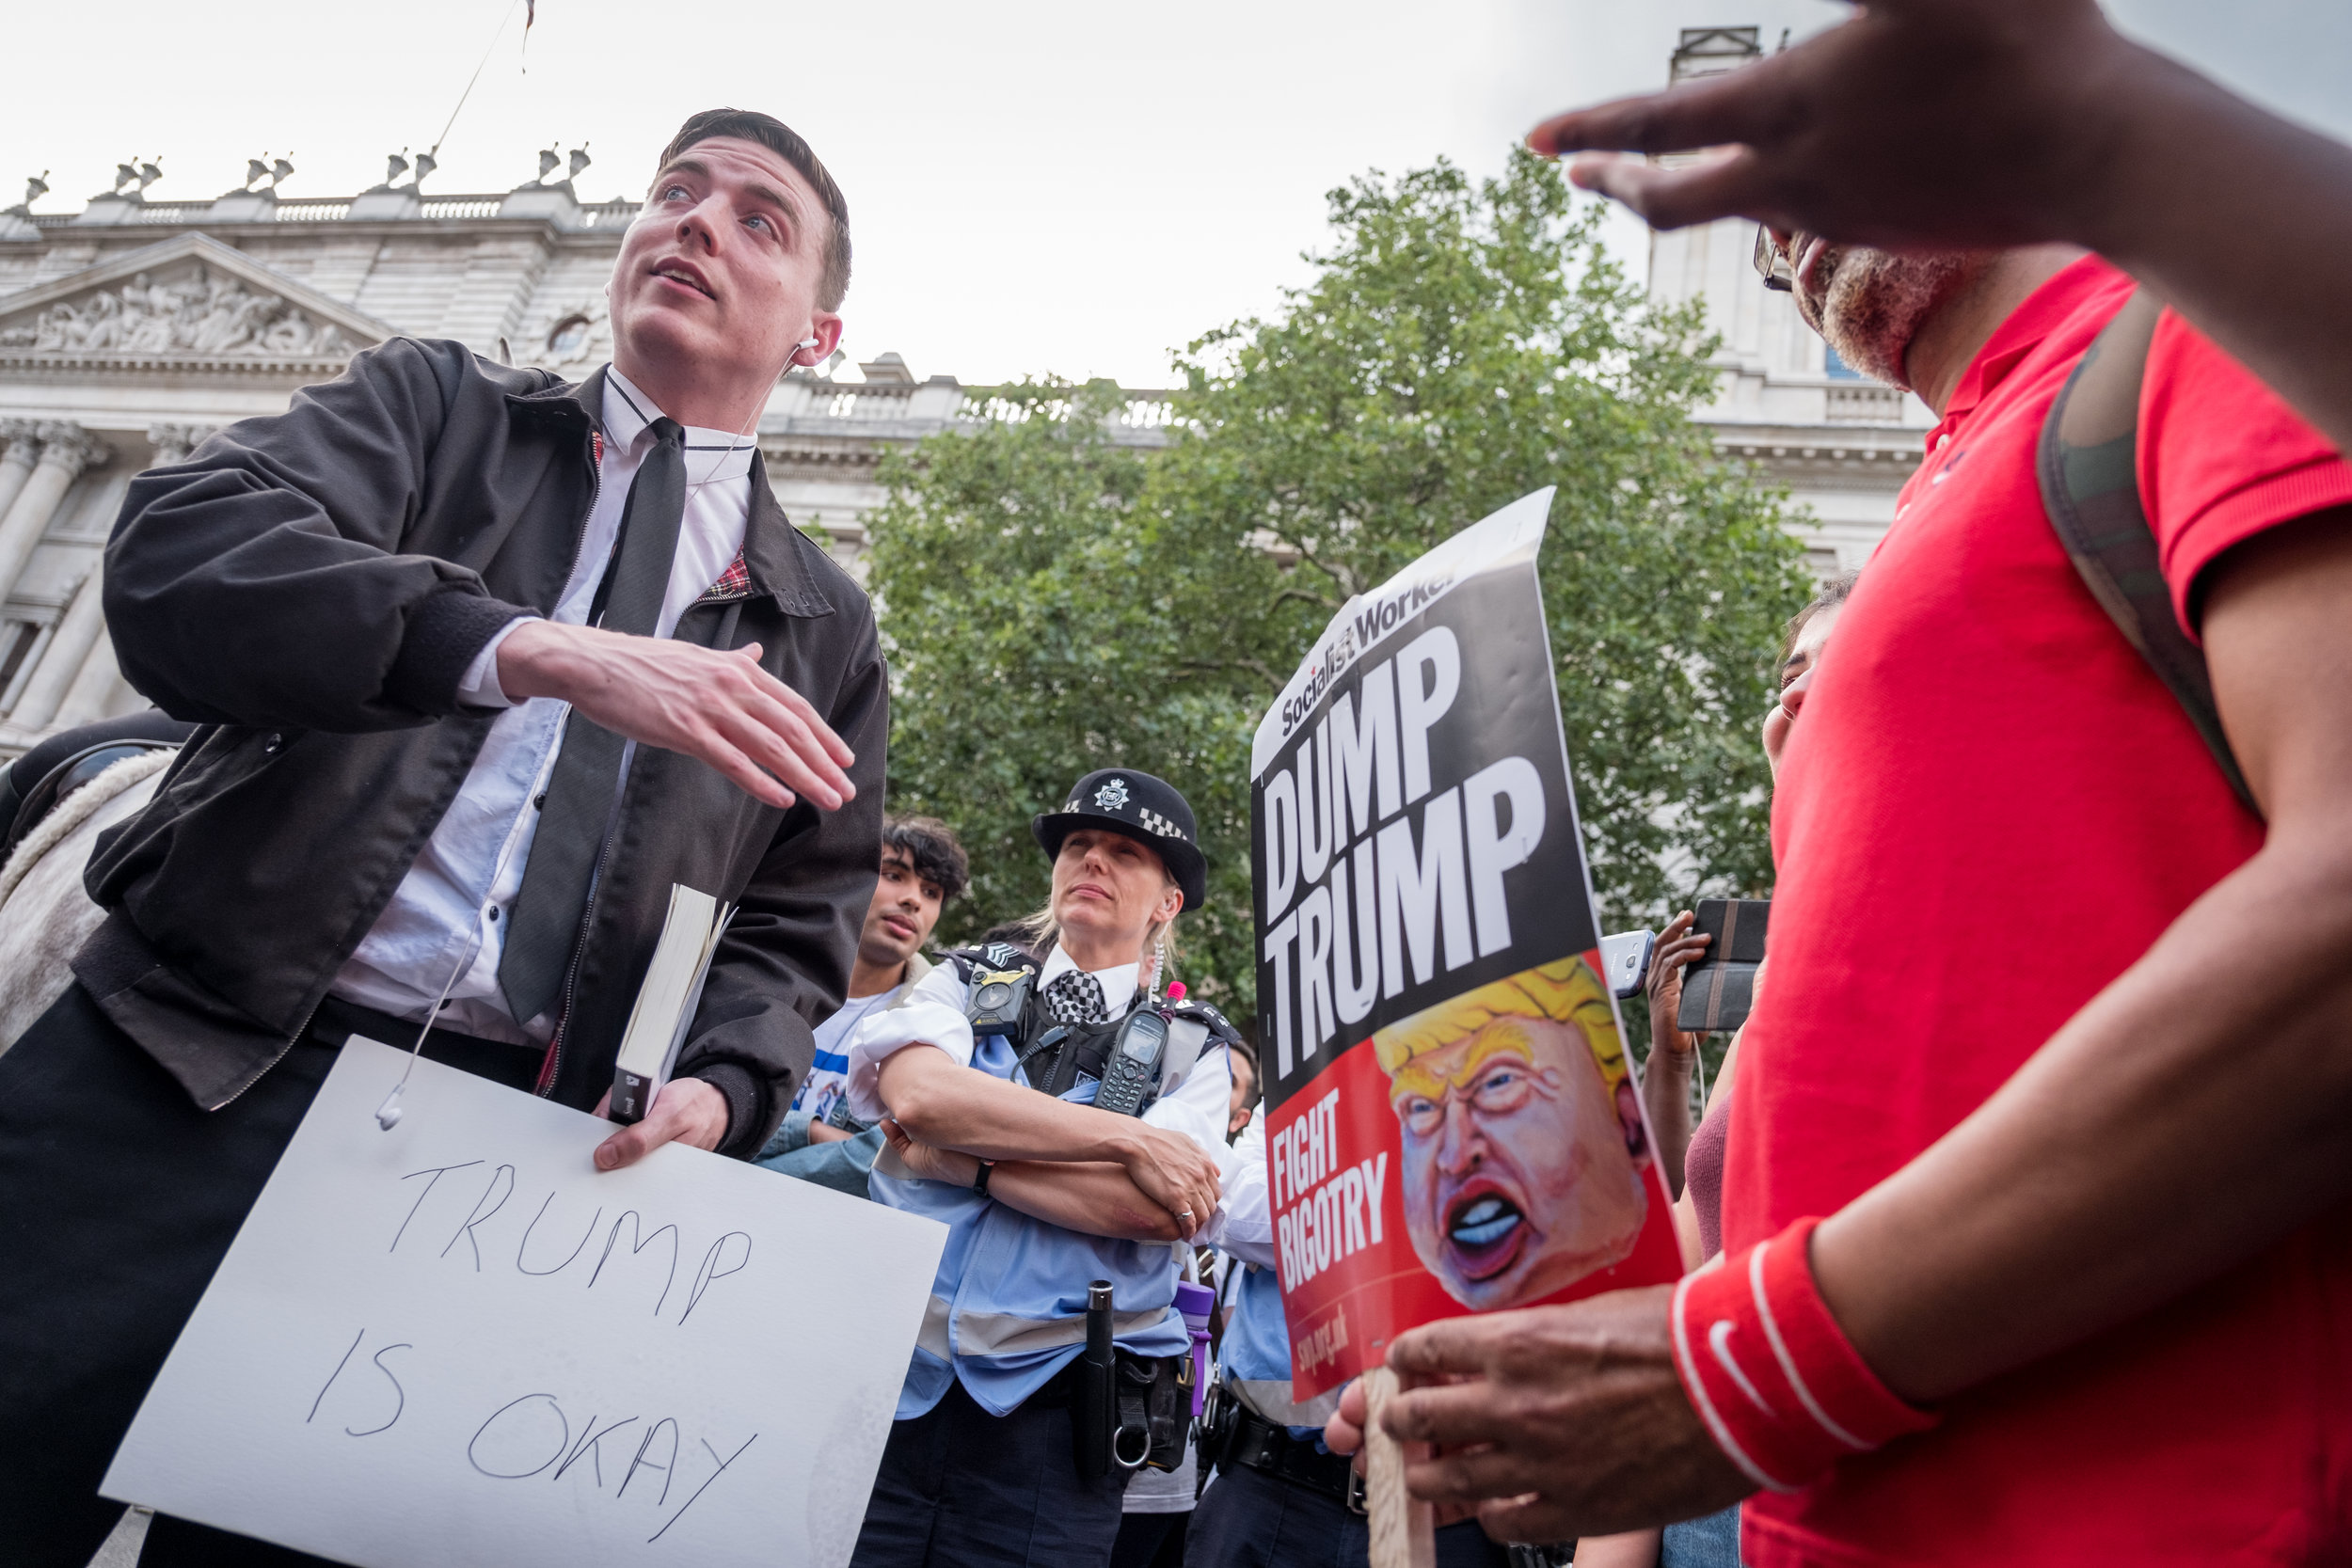 Trump Protest in London on the 13th July 2018 saw about 250`000 people attending at the march.